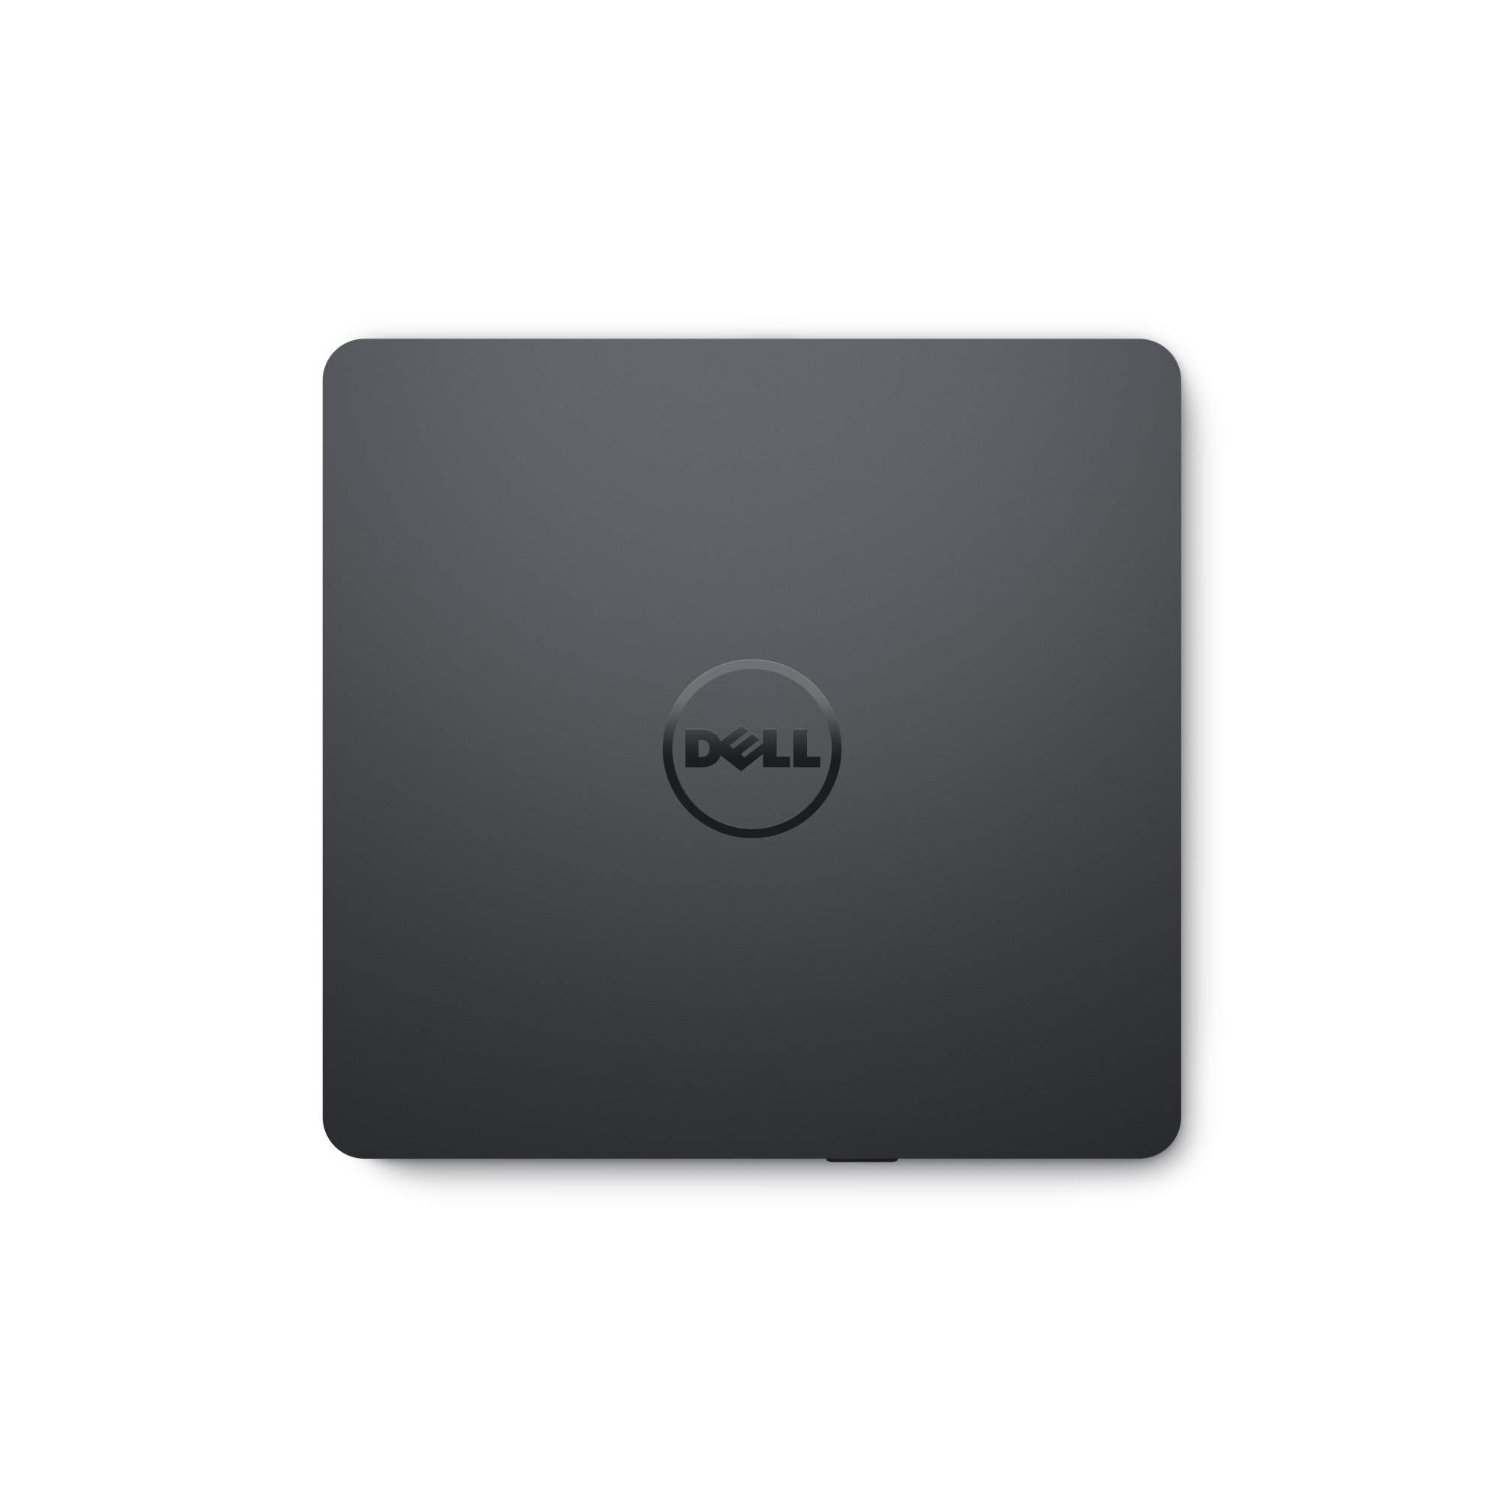 Dell USB Slim DVD R/W Drive